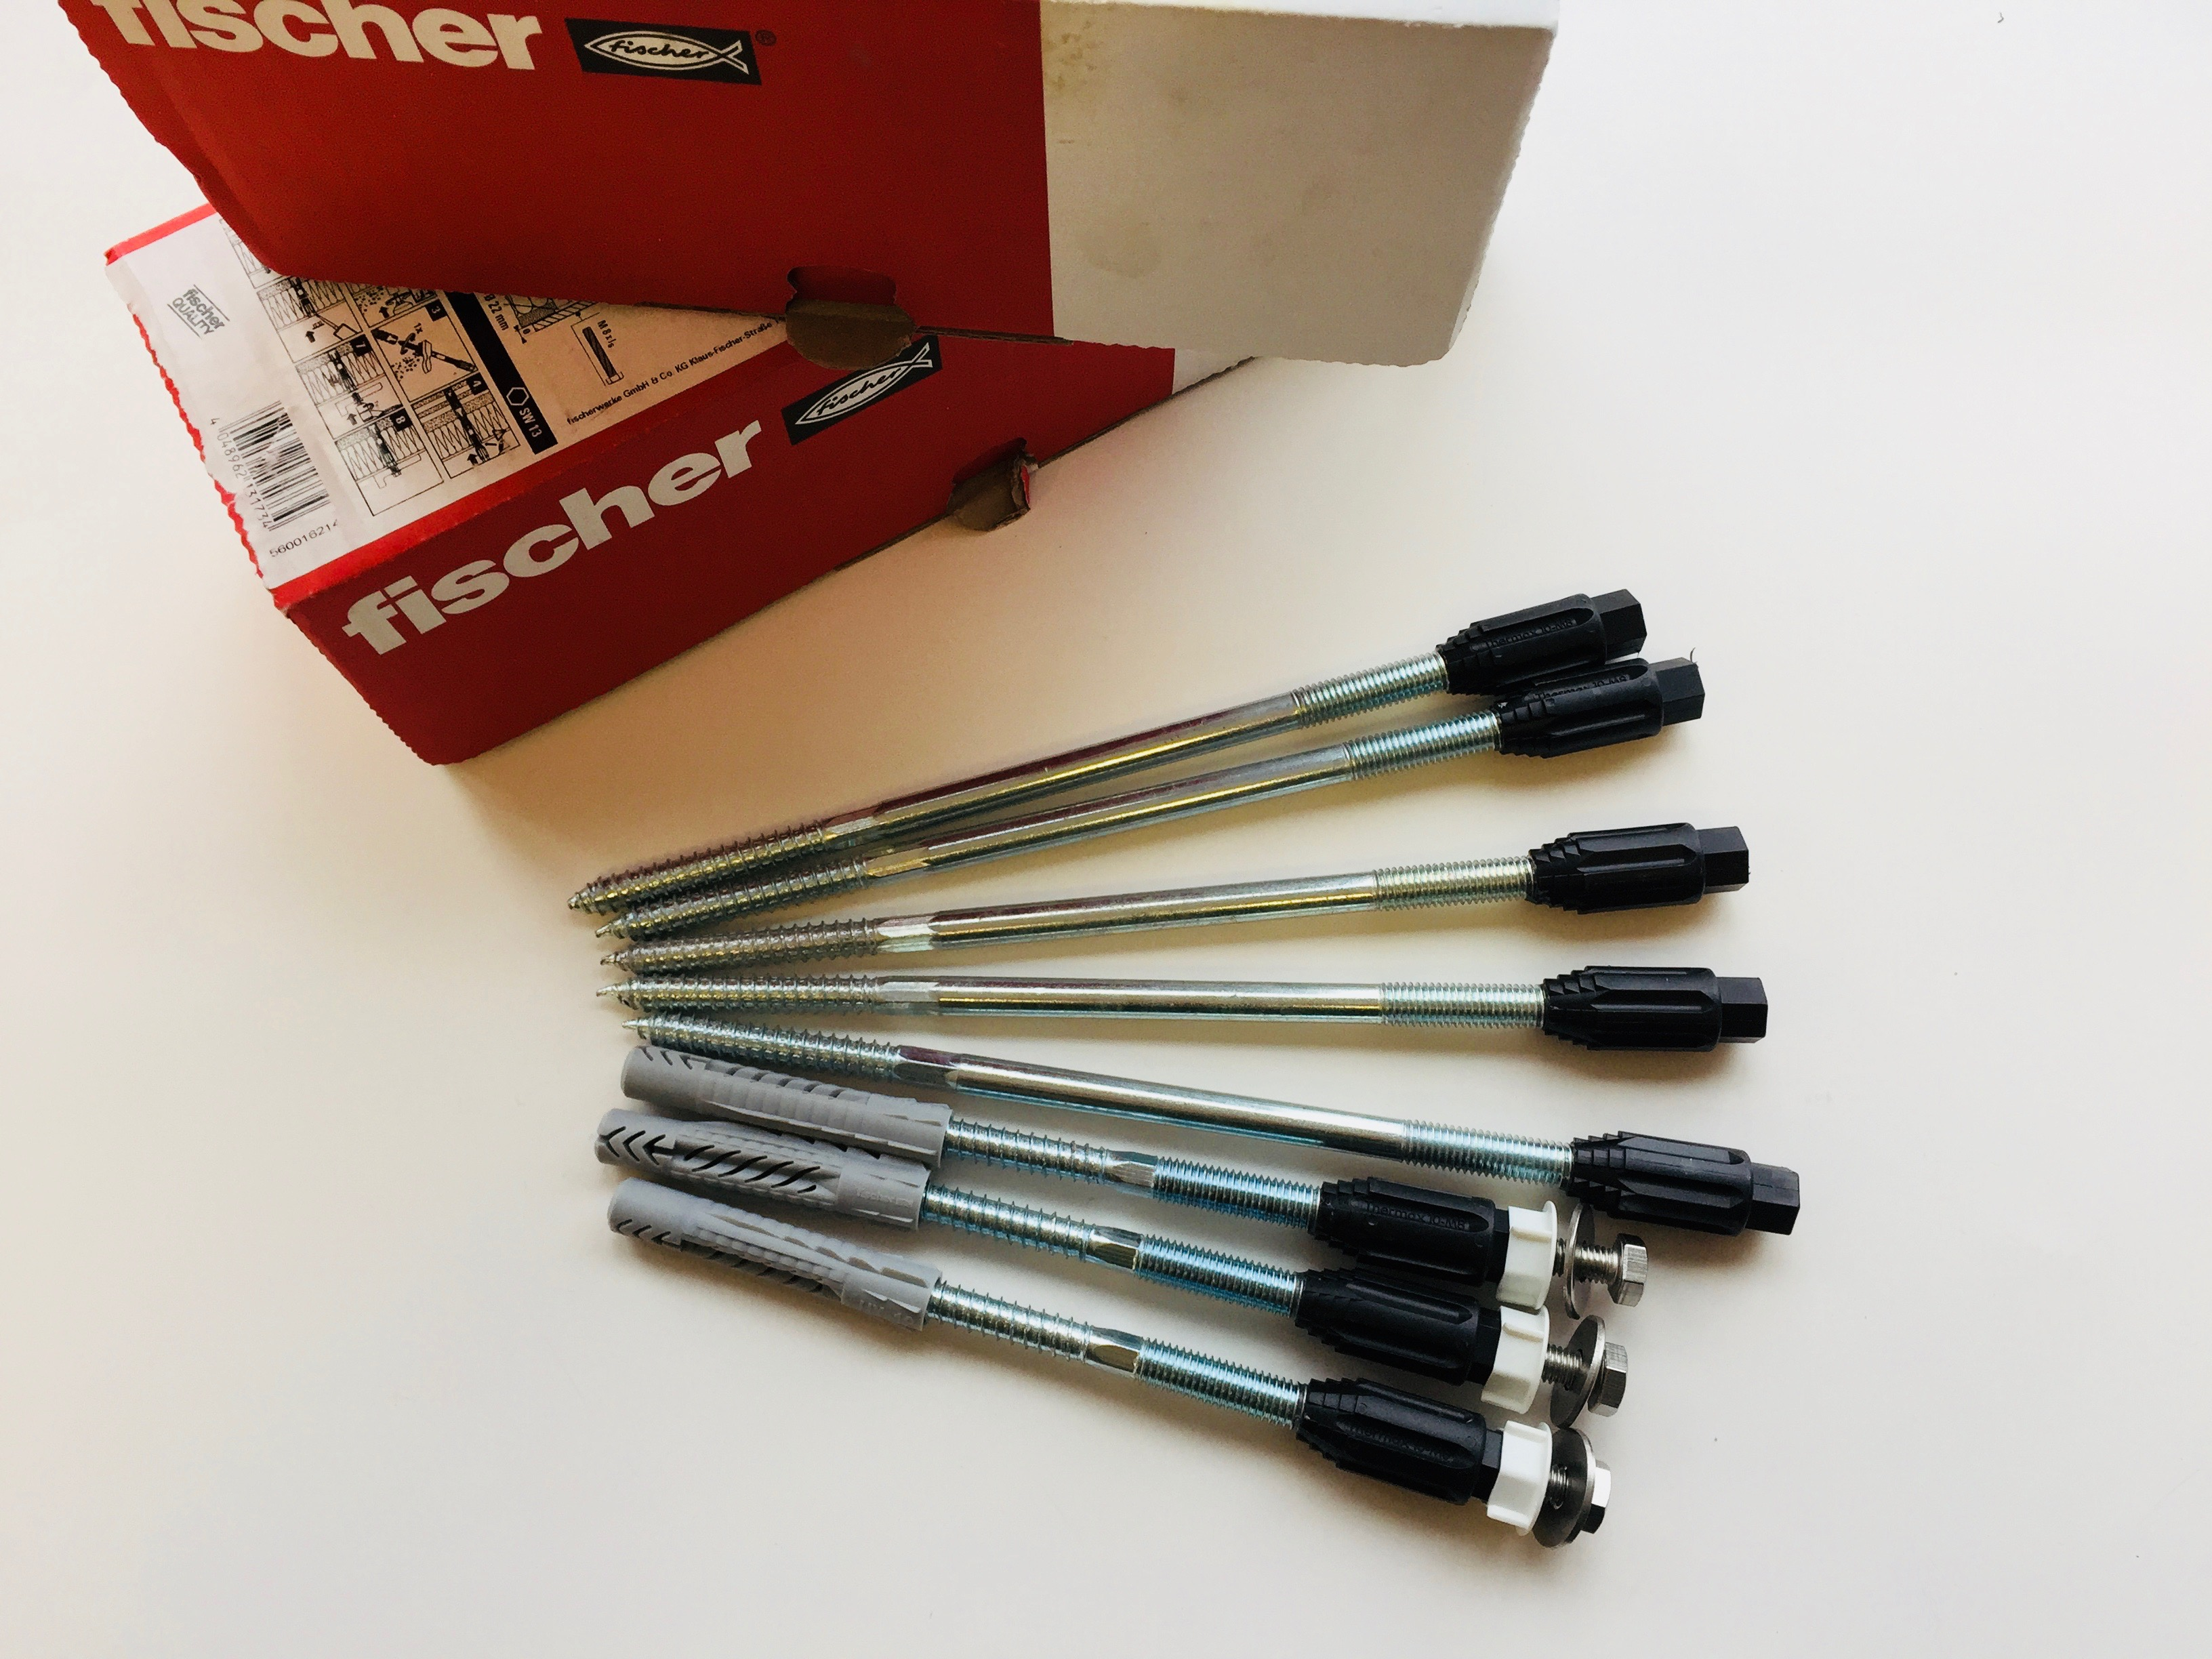 Fischer Thermax anchors with thermal breaks